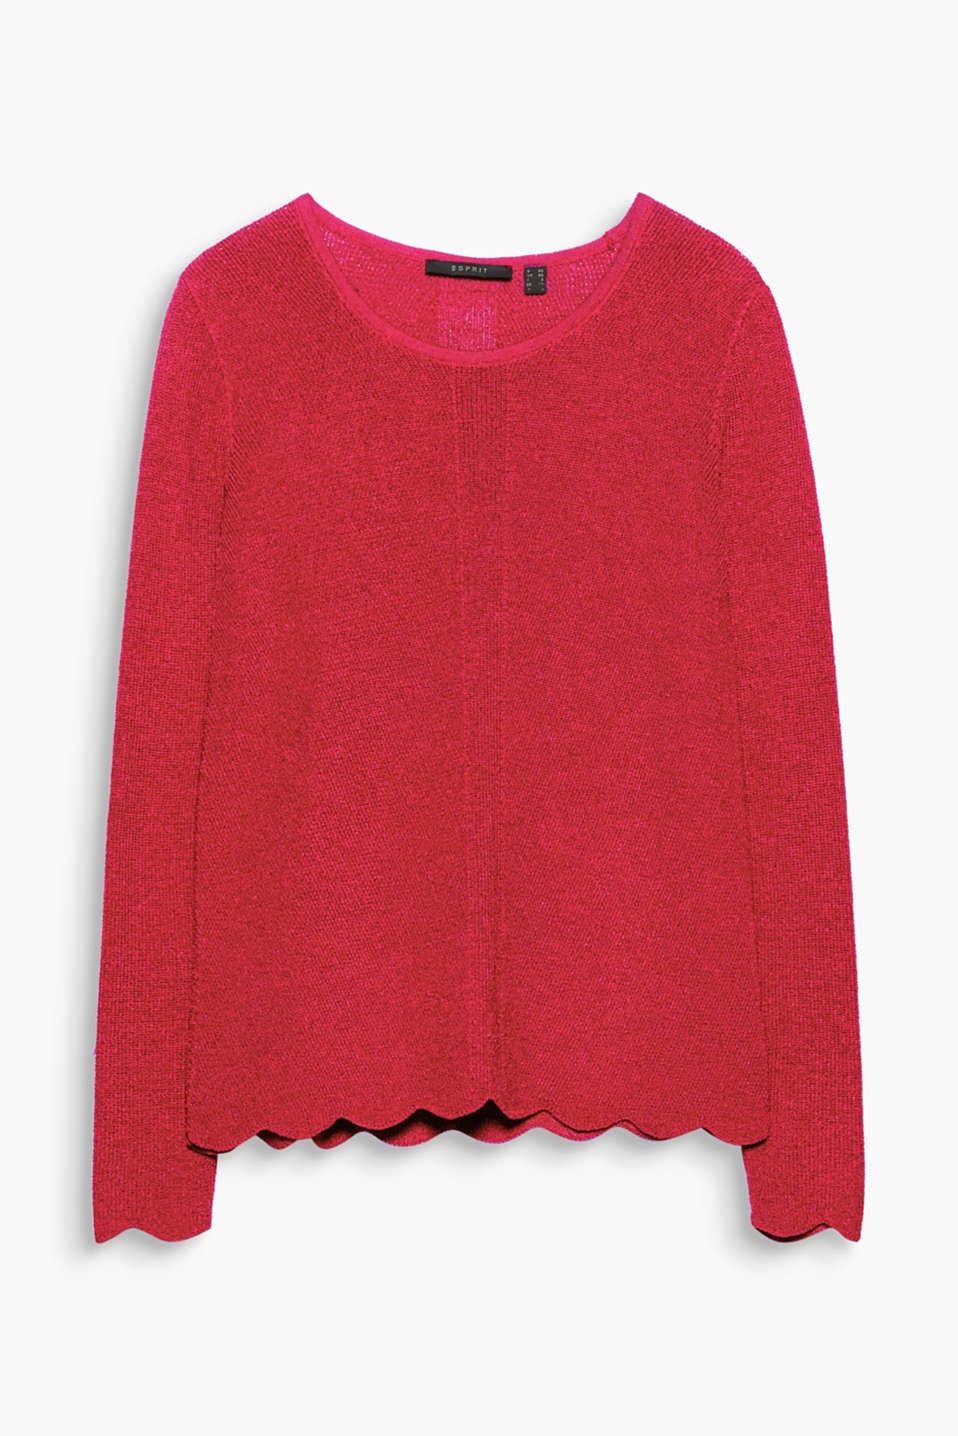 Details like a scalloped hem, the textured yarn and the slight A-line make this jumper a must have!